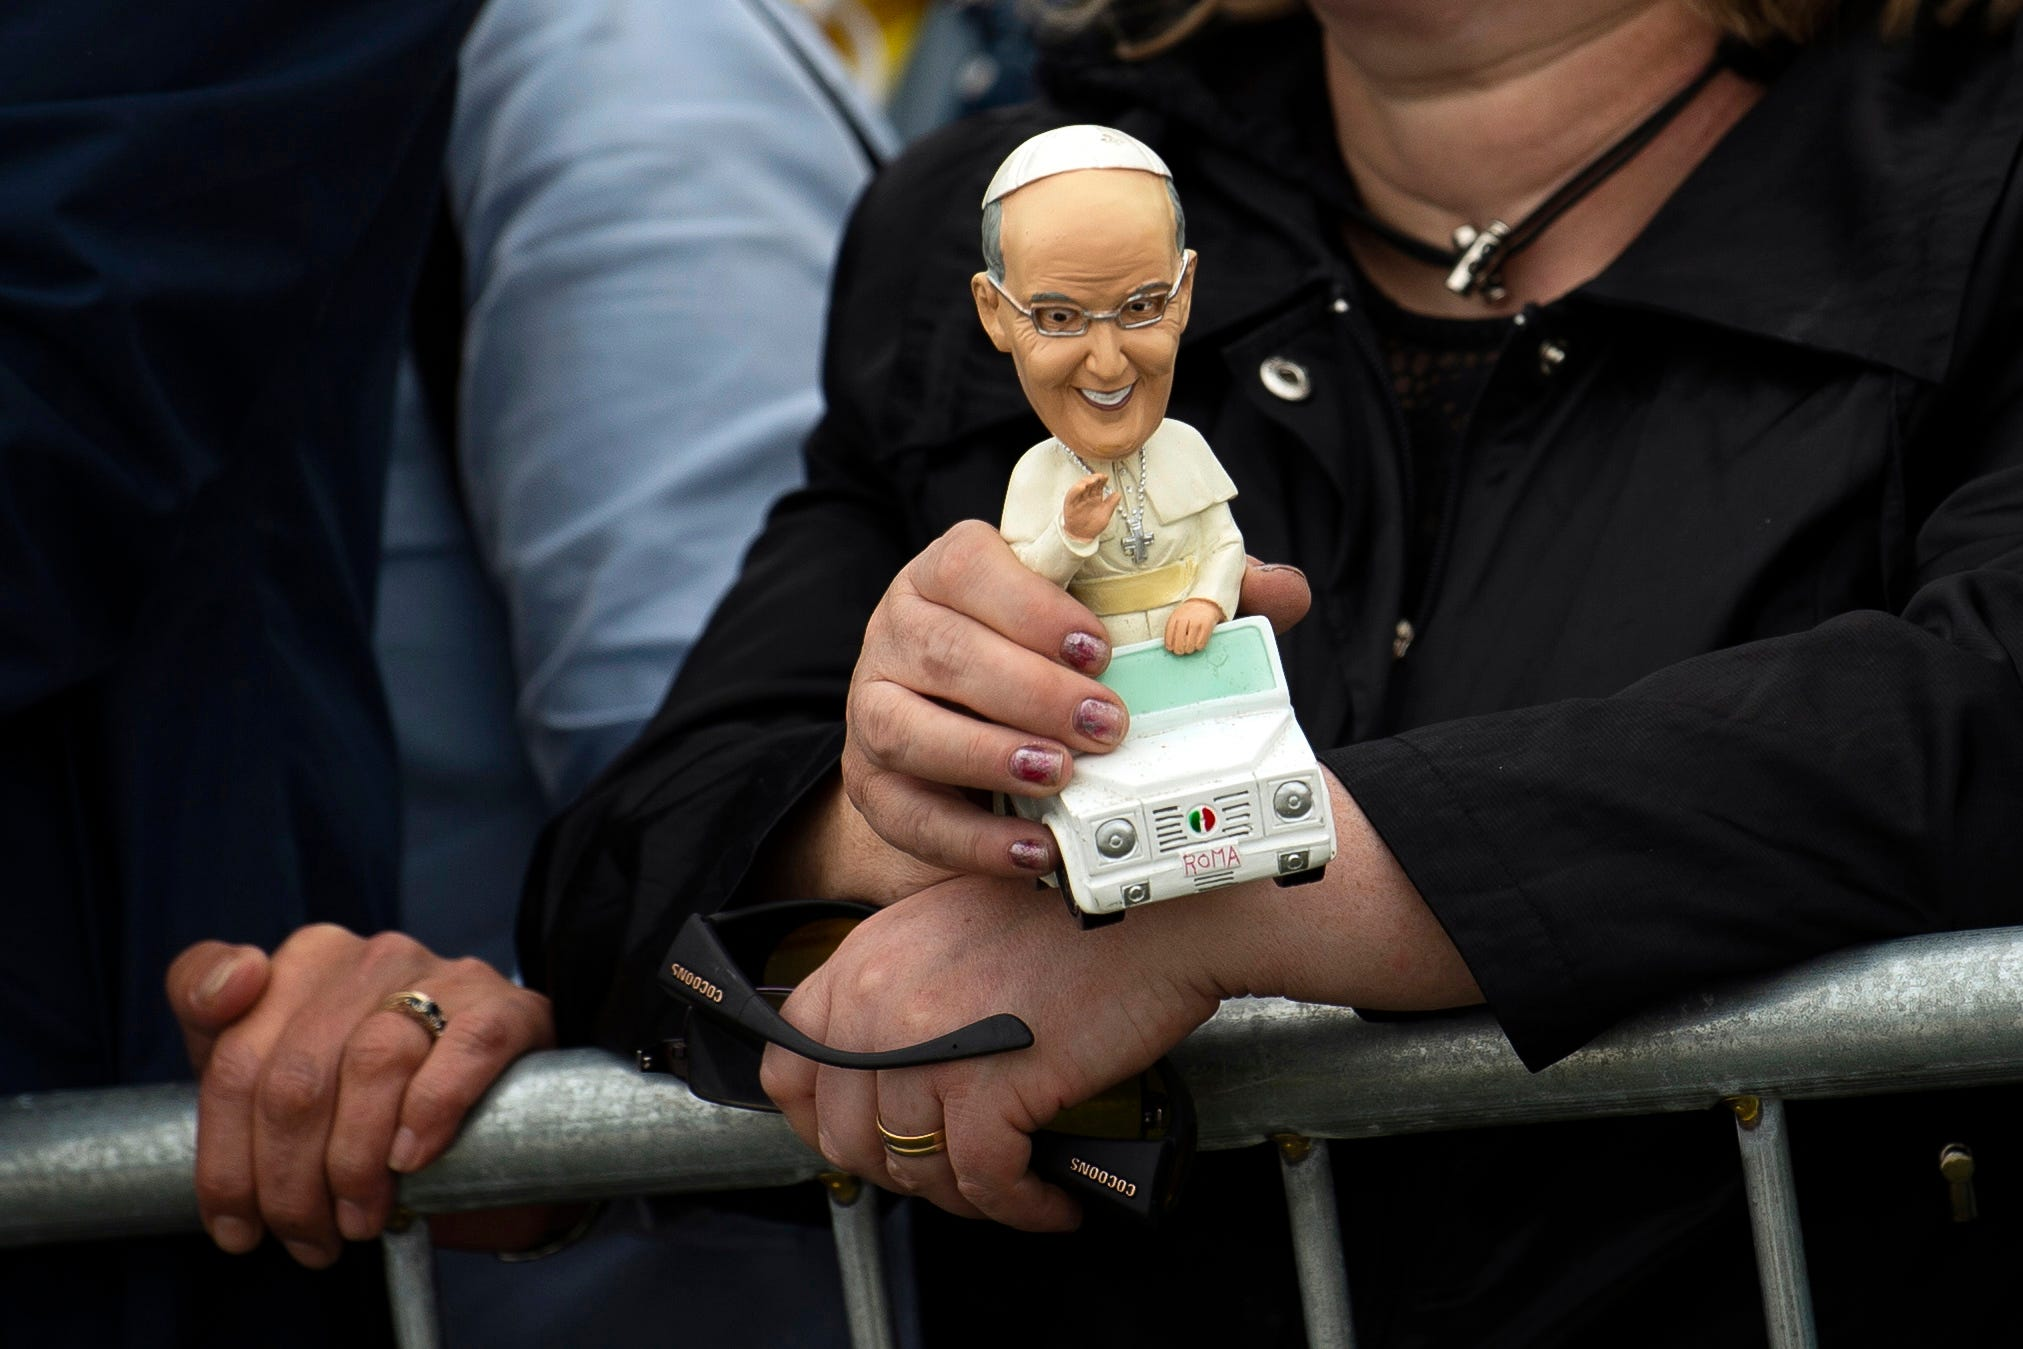 A member of the public holds a Pope Francis doll as he delivers a Papal Mass of the World Meeting of Families at Phoenix Park in Dublin, Ireland on Aug. 26, 2018.